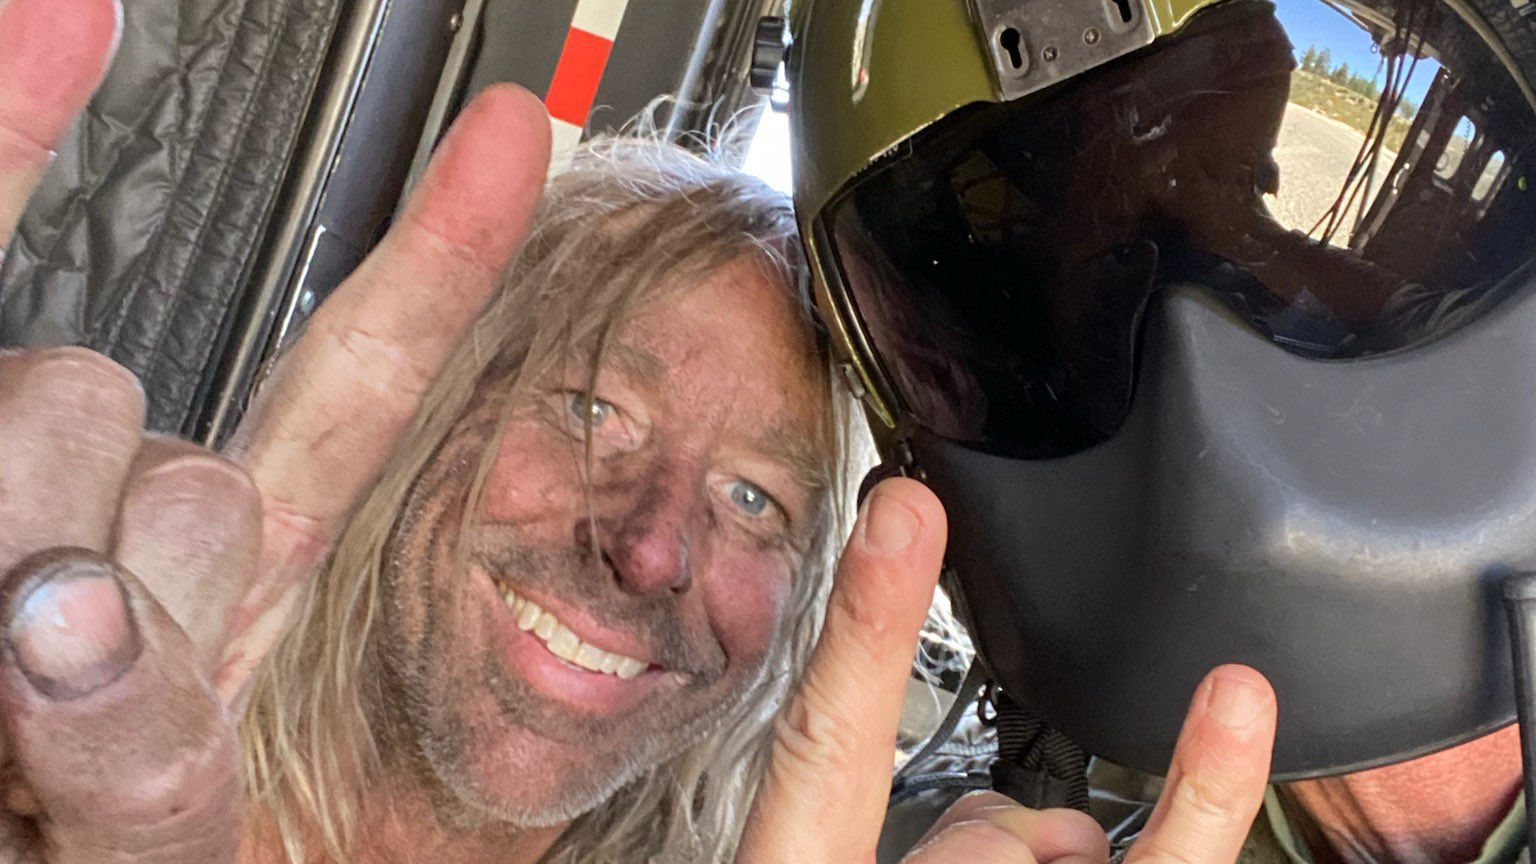 George Null is seen following his rescue on May 19, 2021, after being lost for five days in Angeles National Forest in a photo released by the Los Angeles County Sheriff's Department.